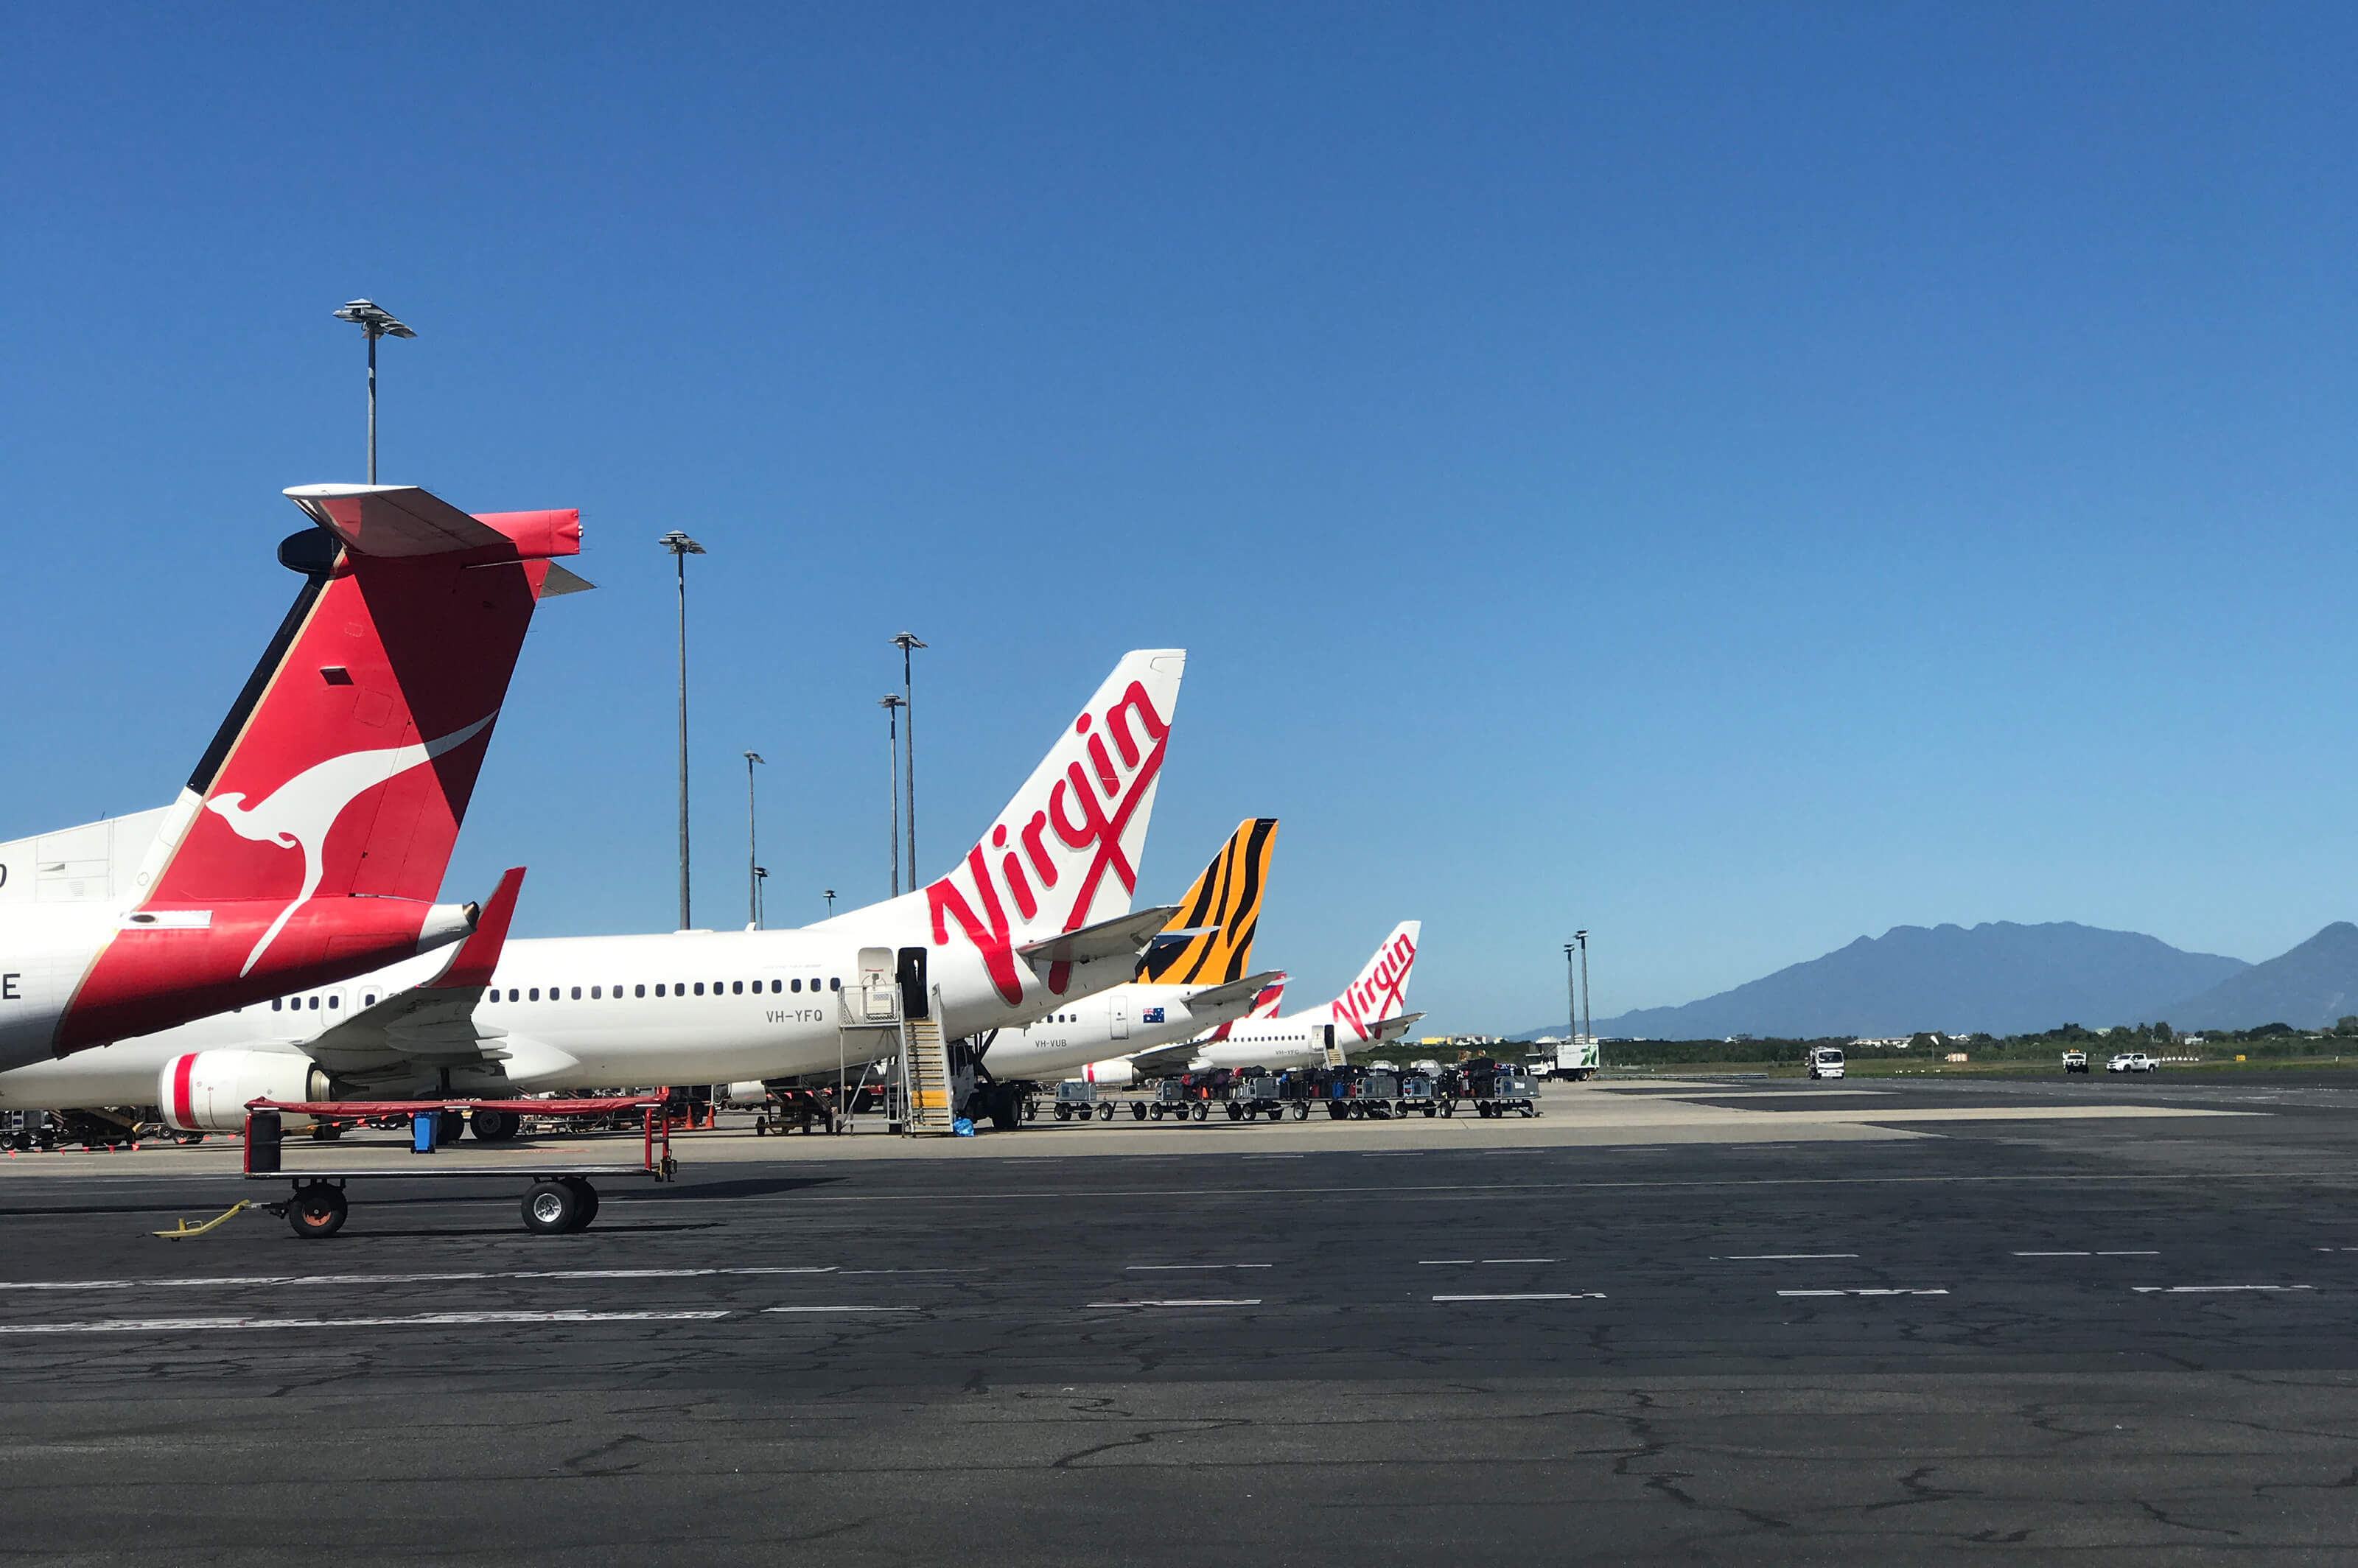 Planes on tarmac at Cairns